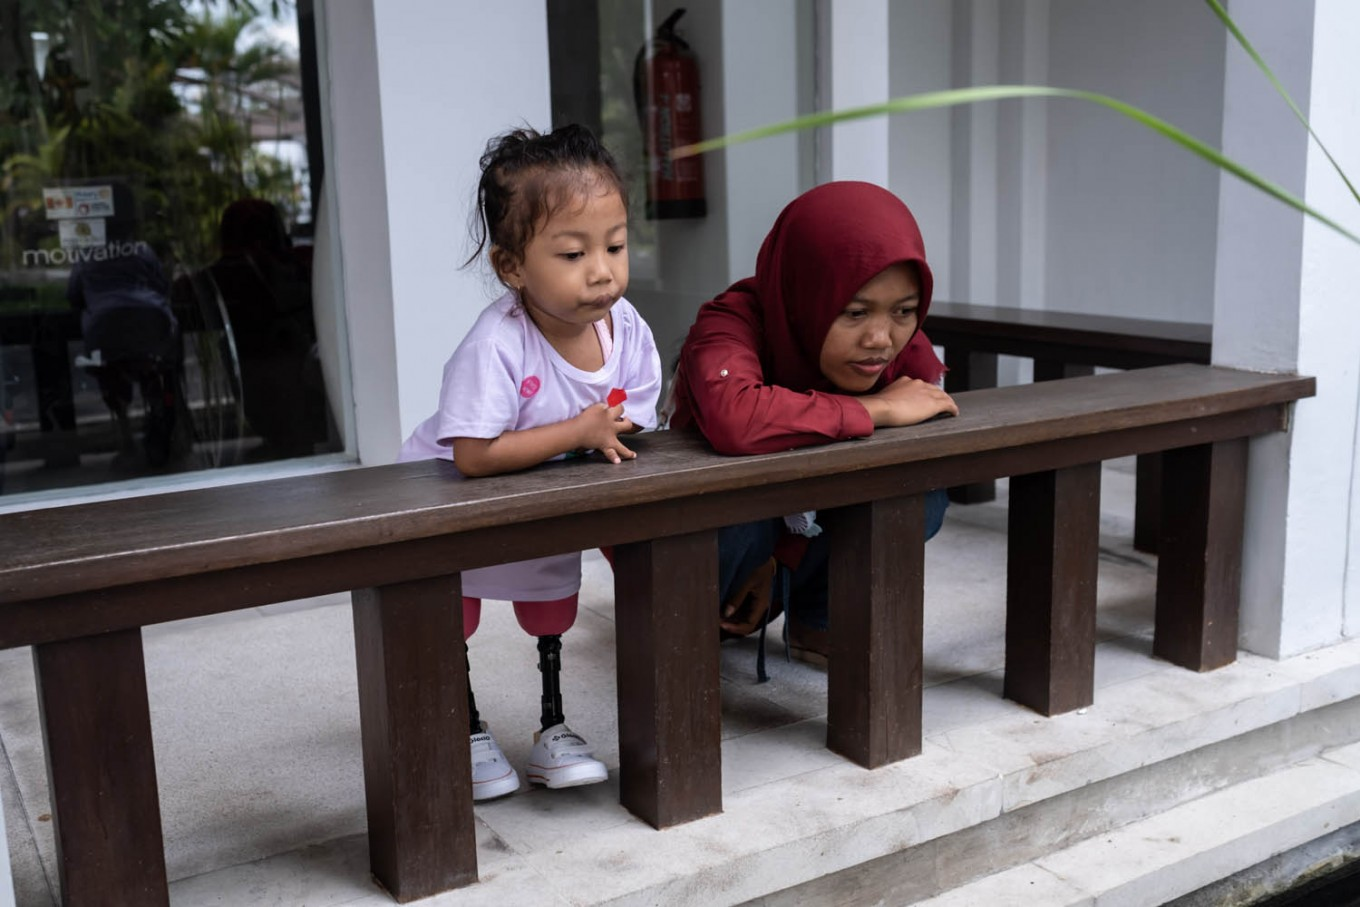 """Safitri and her mother Sofiani look at a fish pond. """"She is excited about going to school now that she's the same height as everybody else,"""" Sofiani said of her daughter's enthusiasm. JP/Agung Parameswara"""